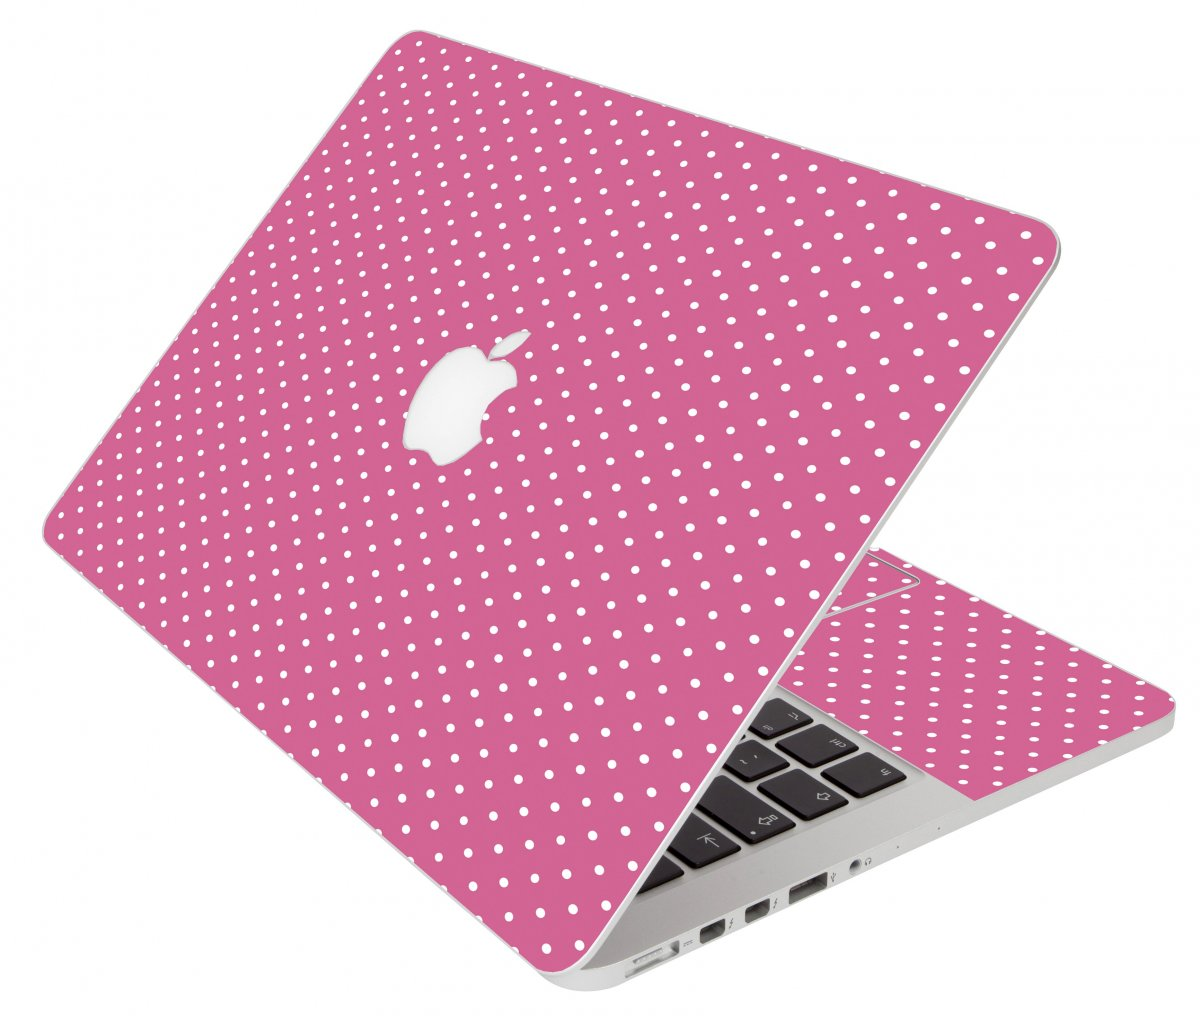 Pink Polka Dot Apple Macbook Pro 17 A1297 Laptop Skin